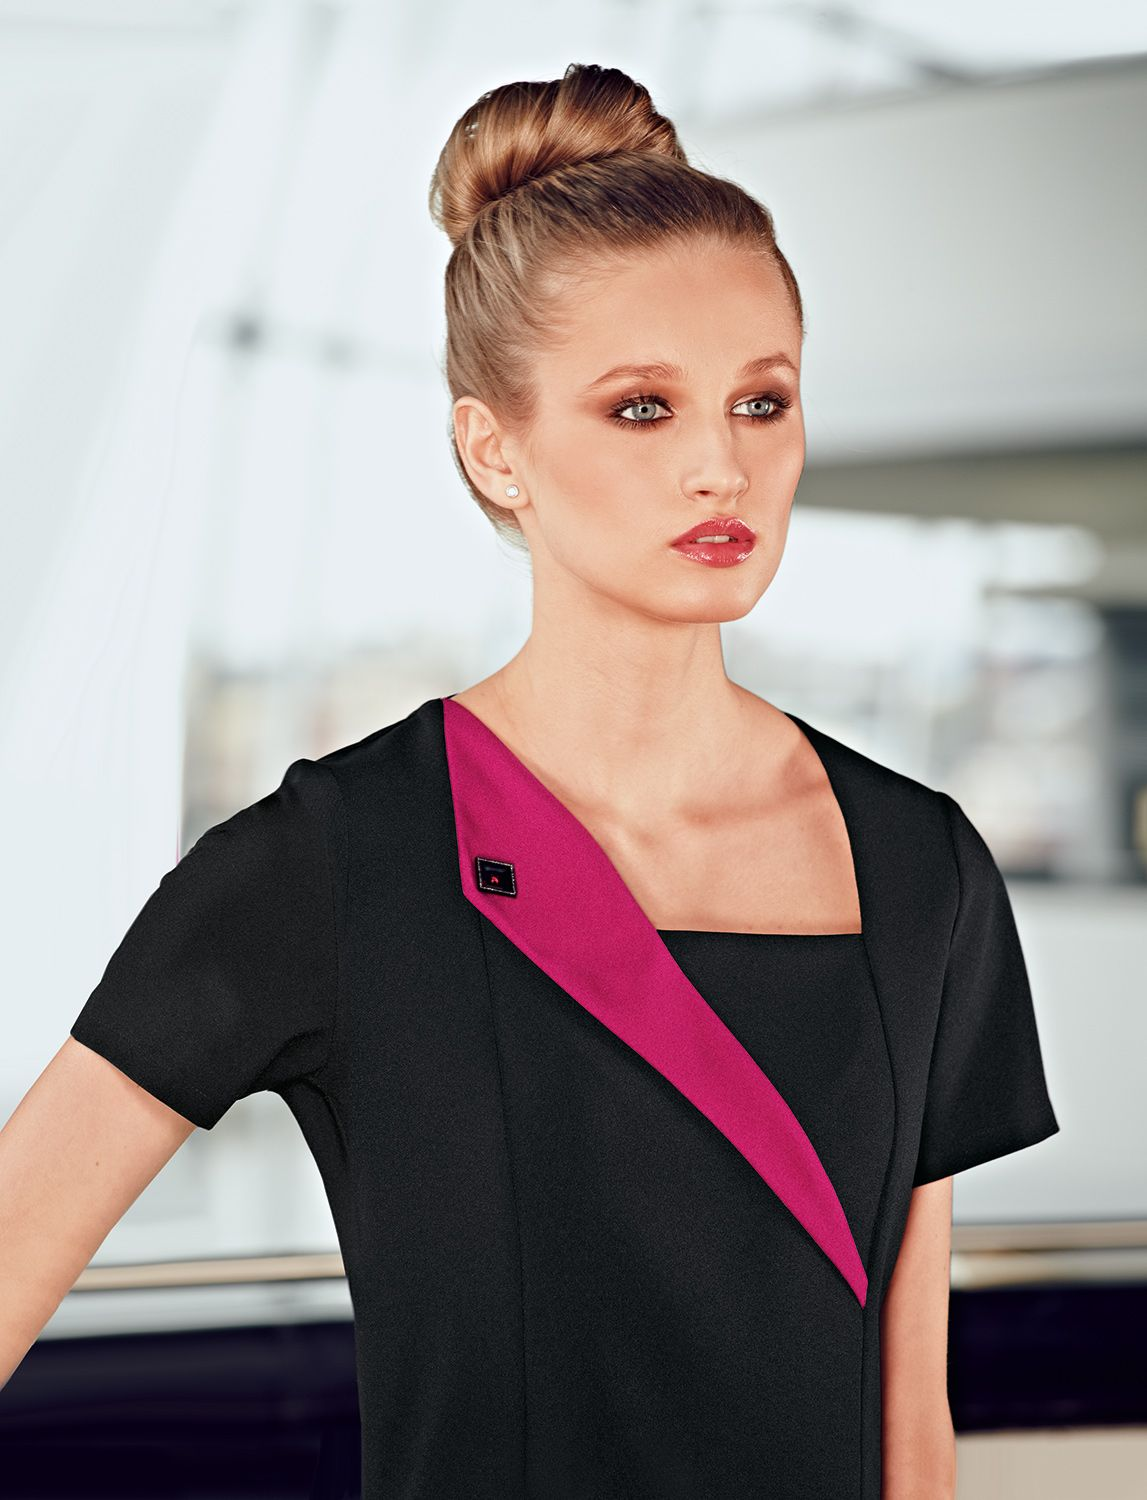 c0174679aae02e Simon Jersey stylish black beauty tunic with hot pink contrast lapel ...